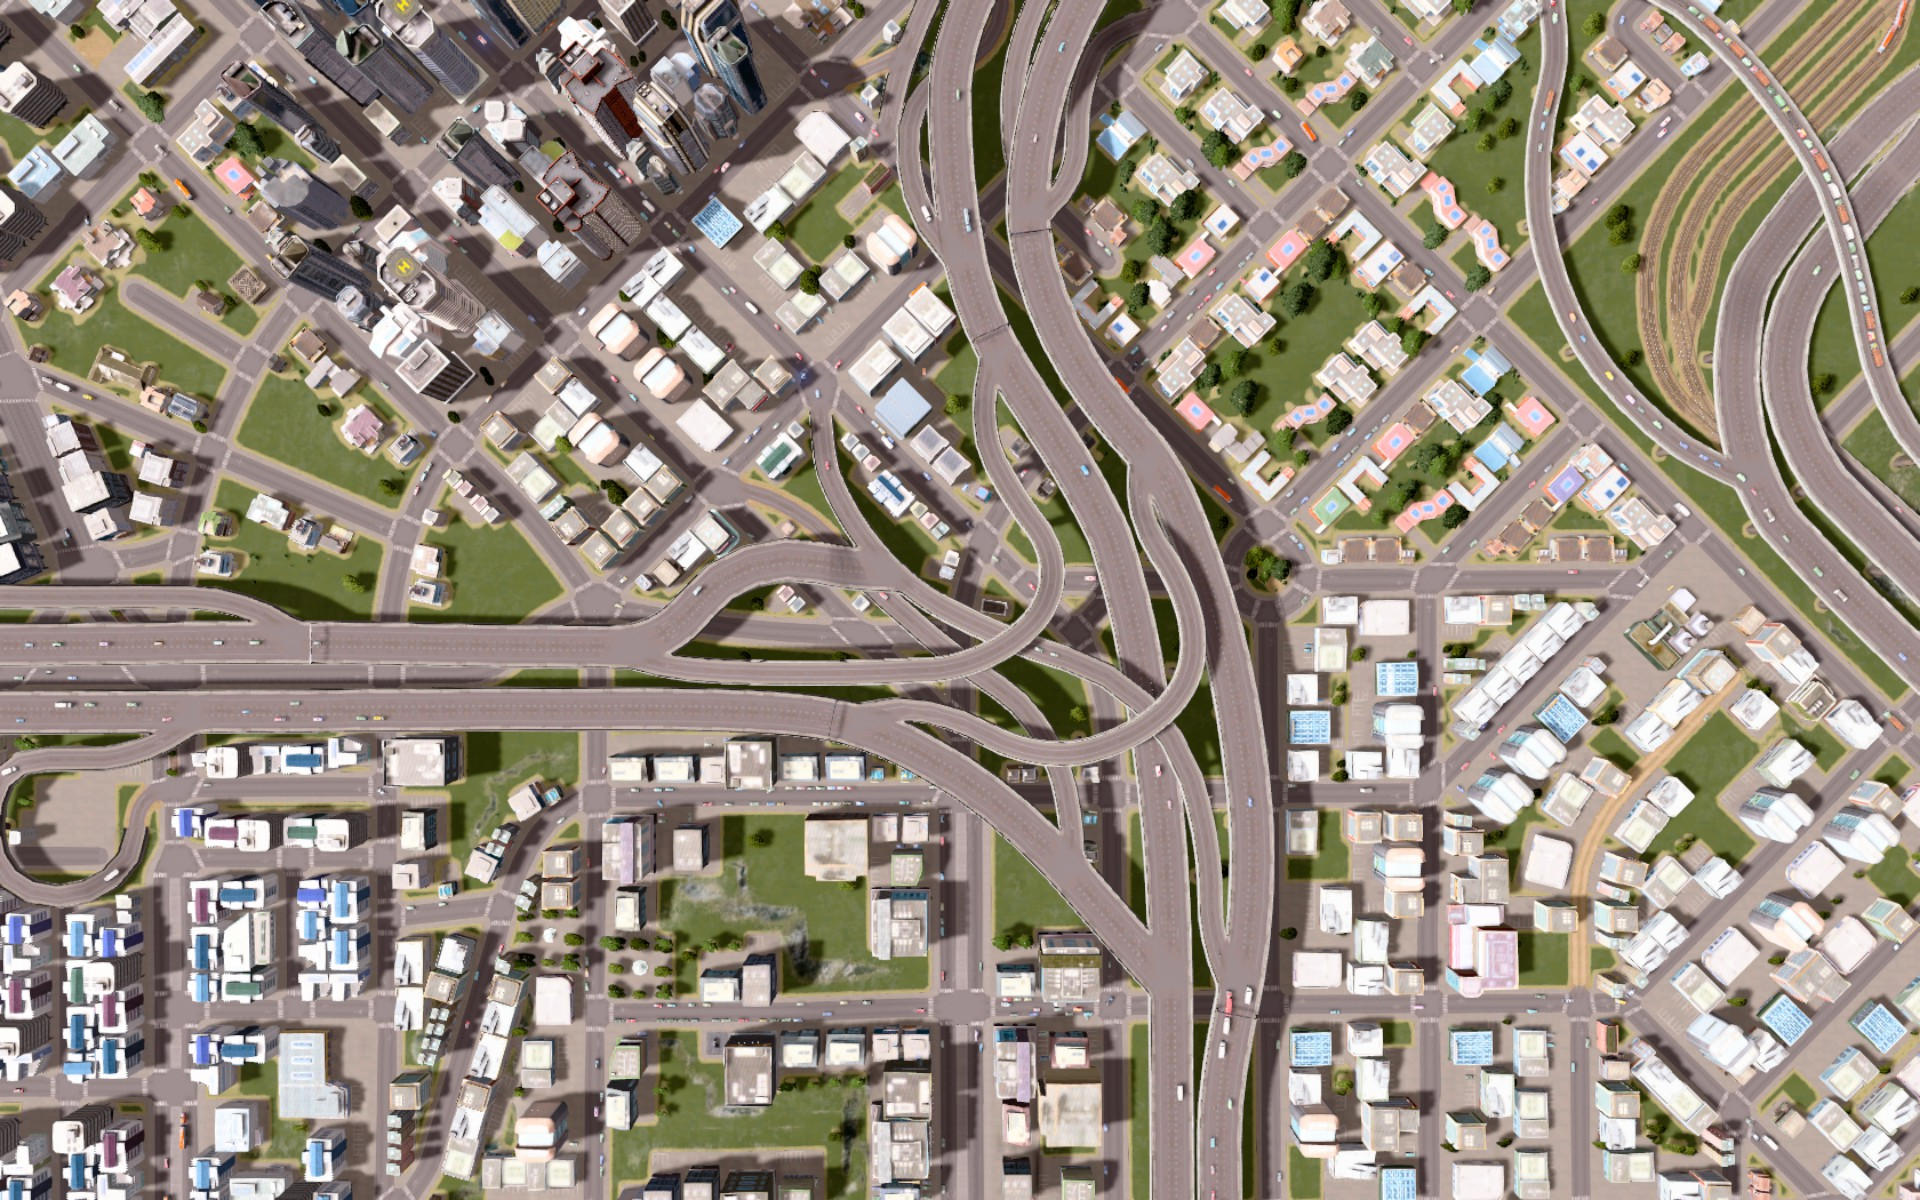 San Francisco in Cities: Skylines is freaking mind-blowing